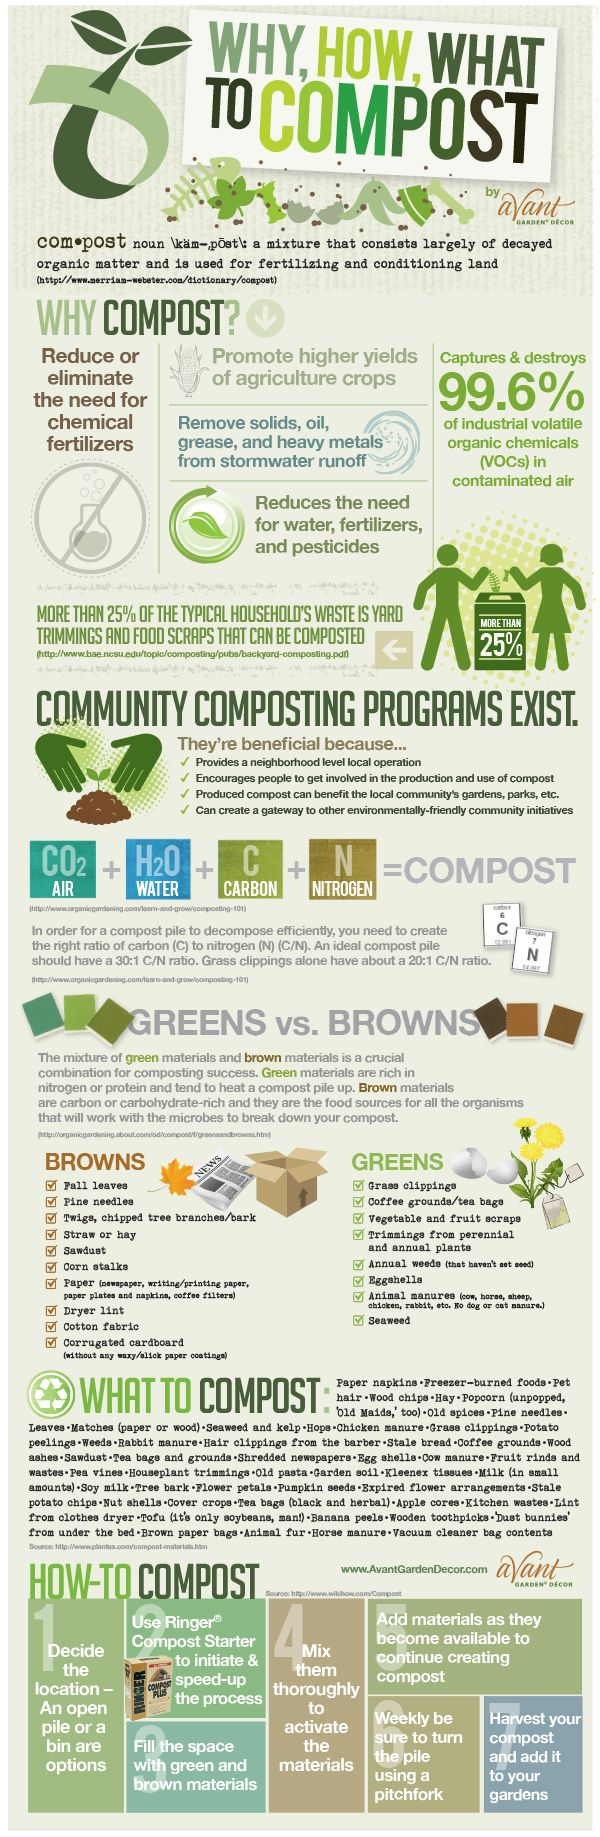 INFOGRAPHIC: Why, How, What to Compost via AvantGardenDecor.com